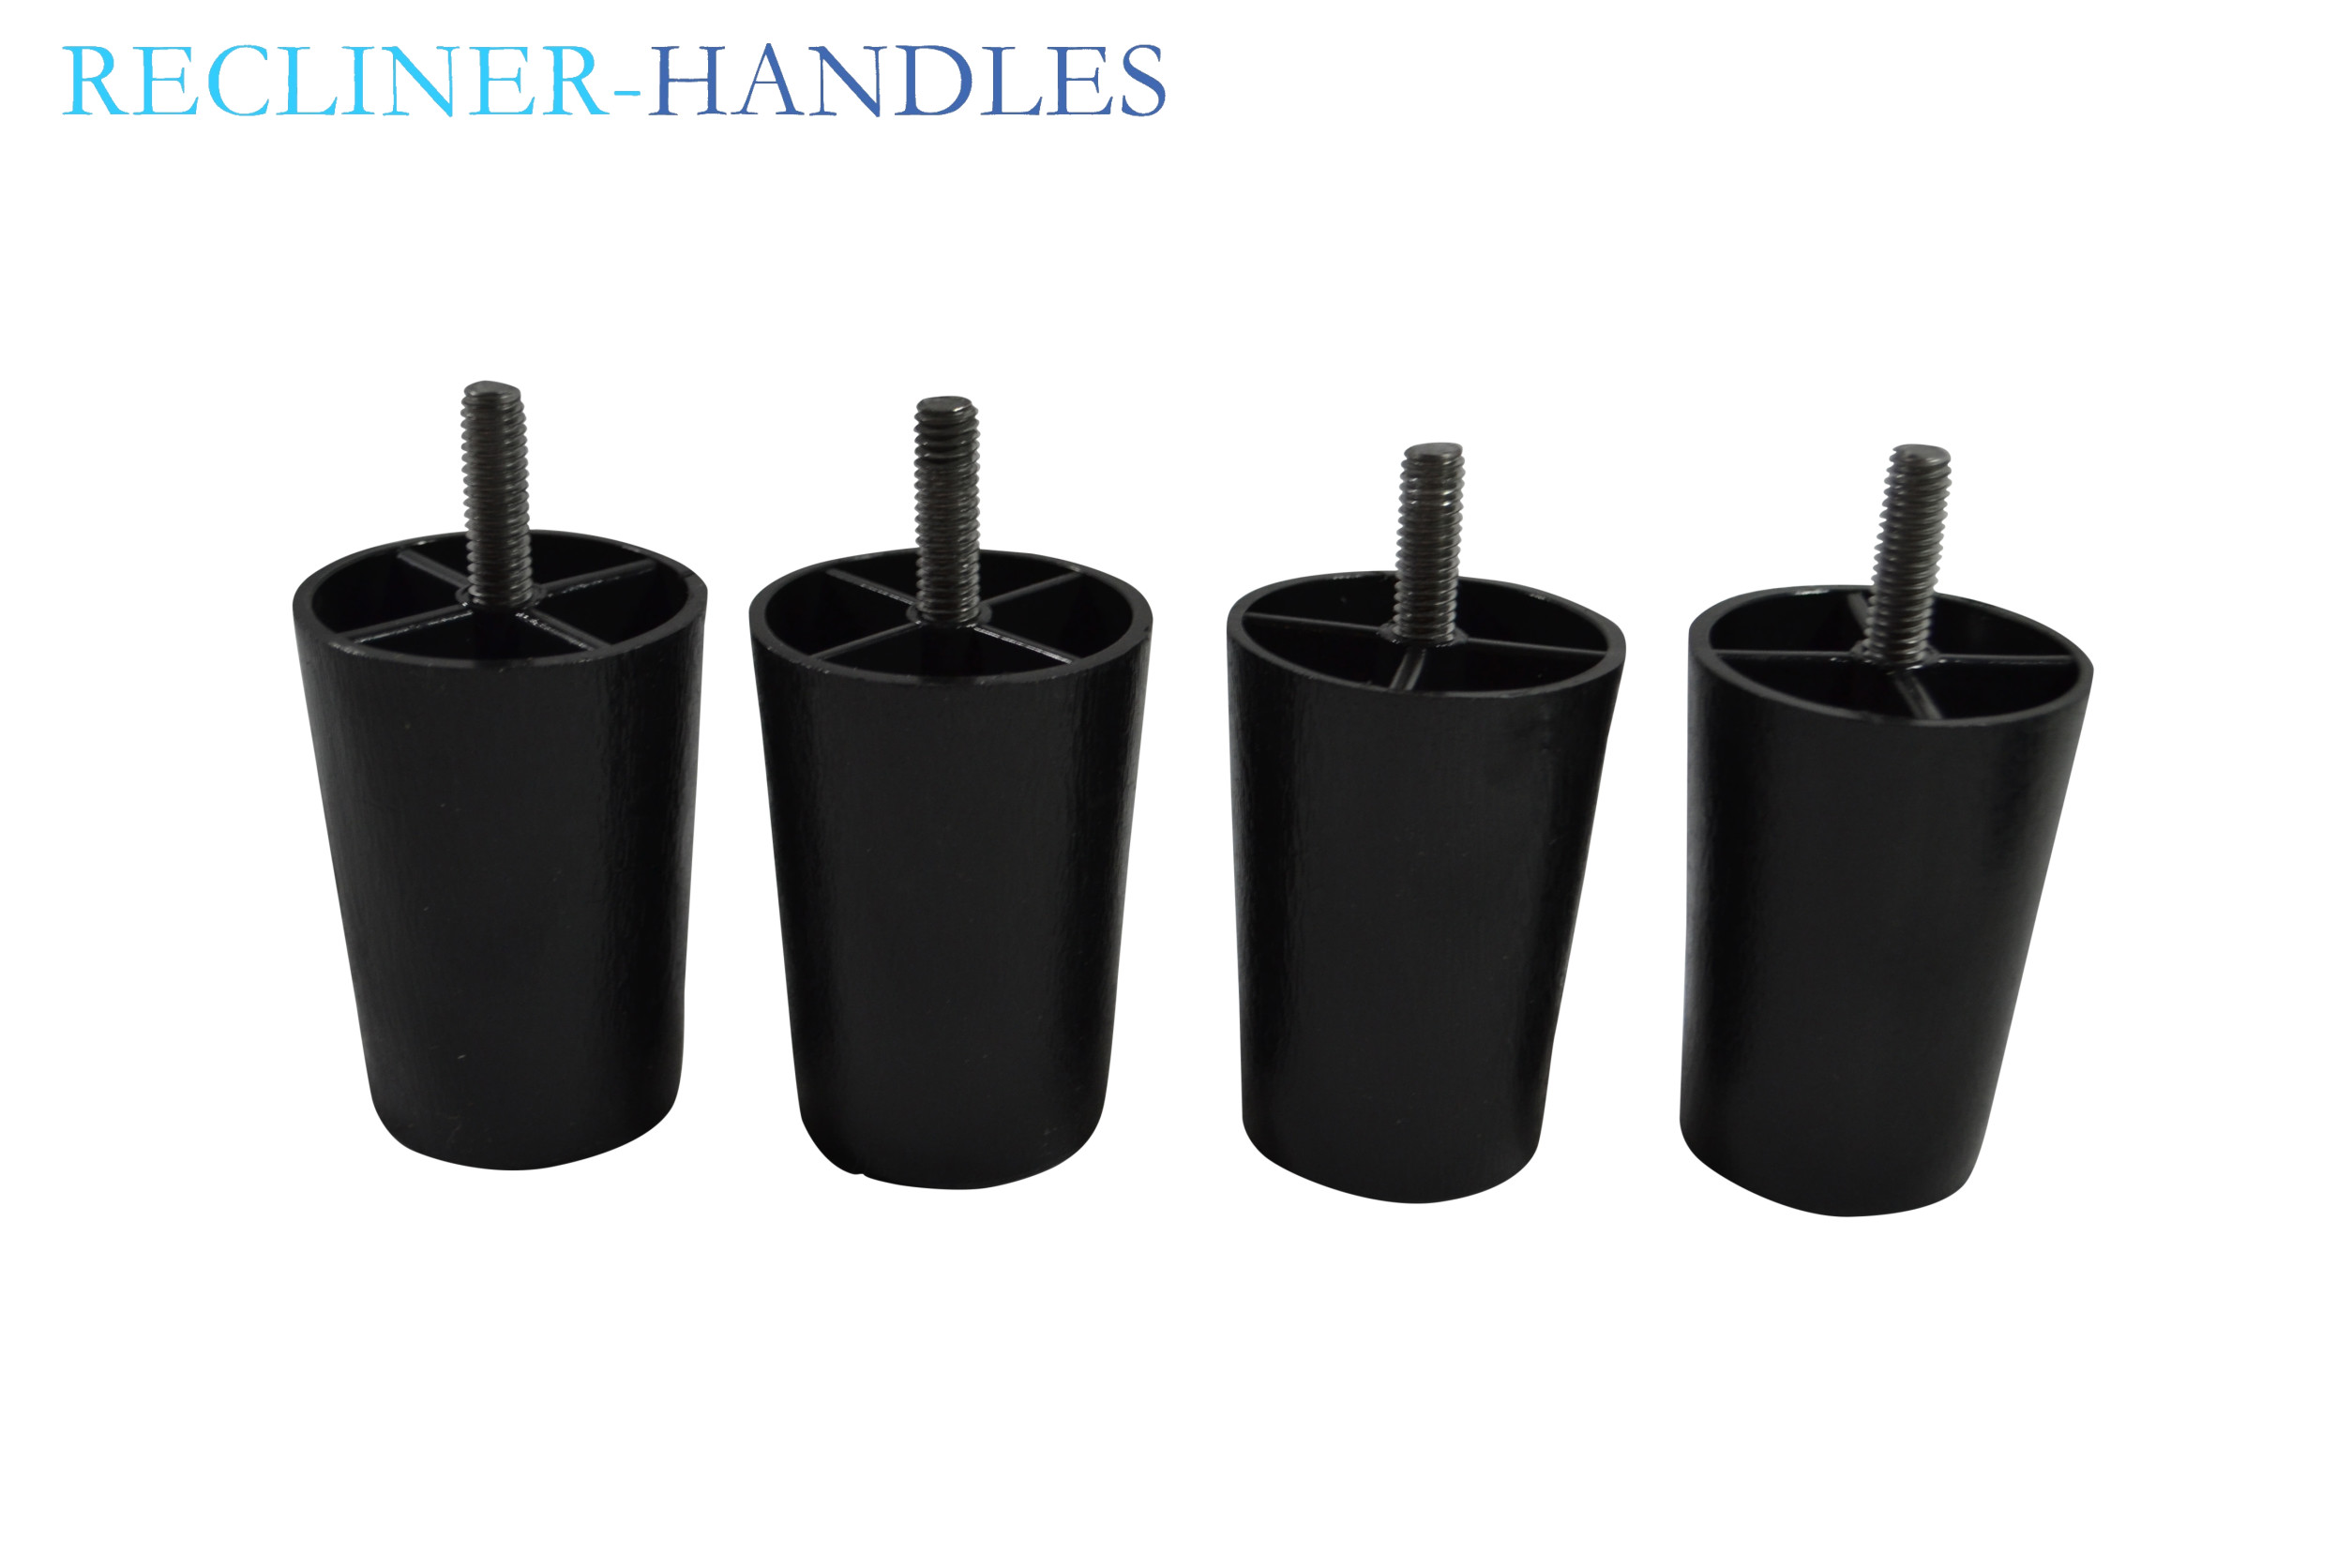 Recliner Handles Replacement Furniture Legs 3 Inches Set Of 4 Plastic Black Ebay